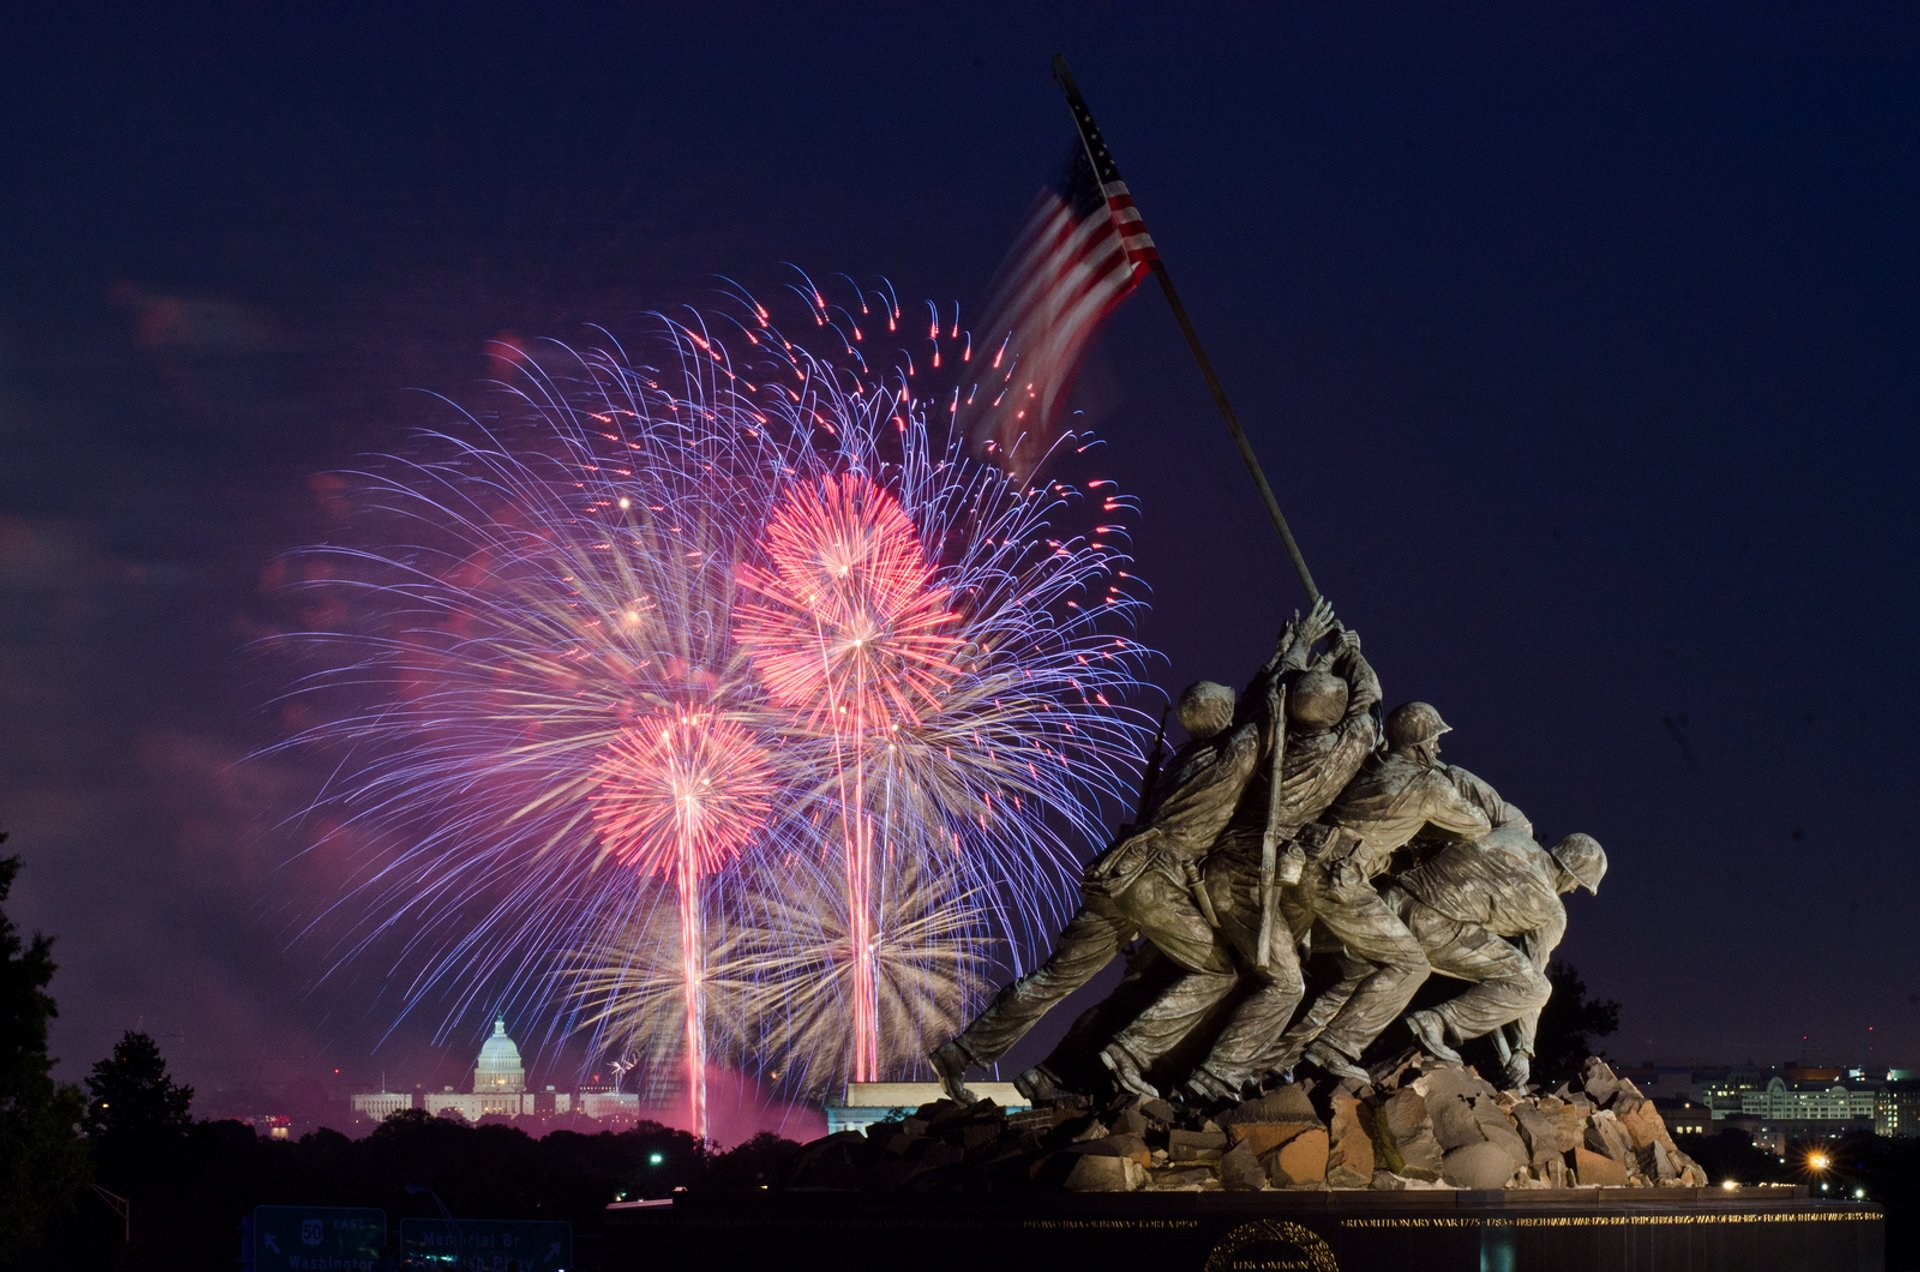 Best time to see 4th of July Concert, Parade & Fireworks in Washington, D.C. 2020